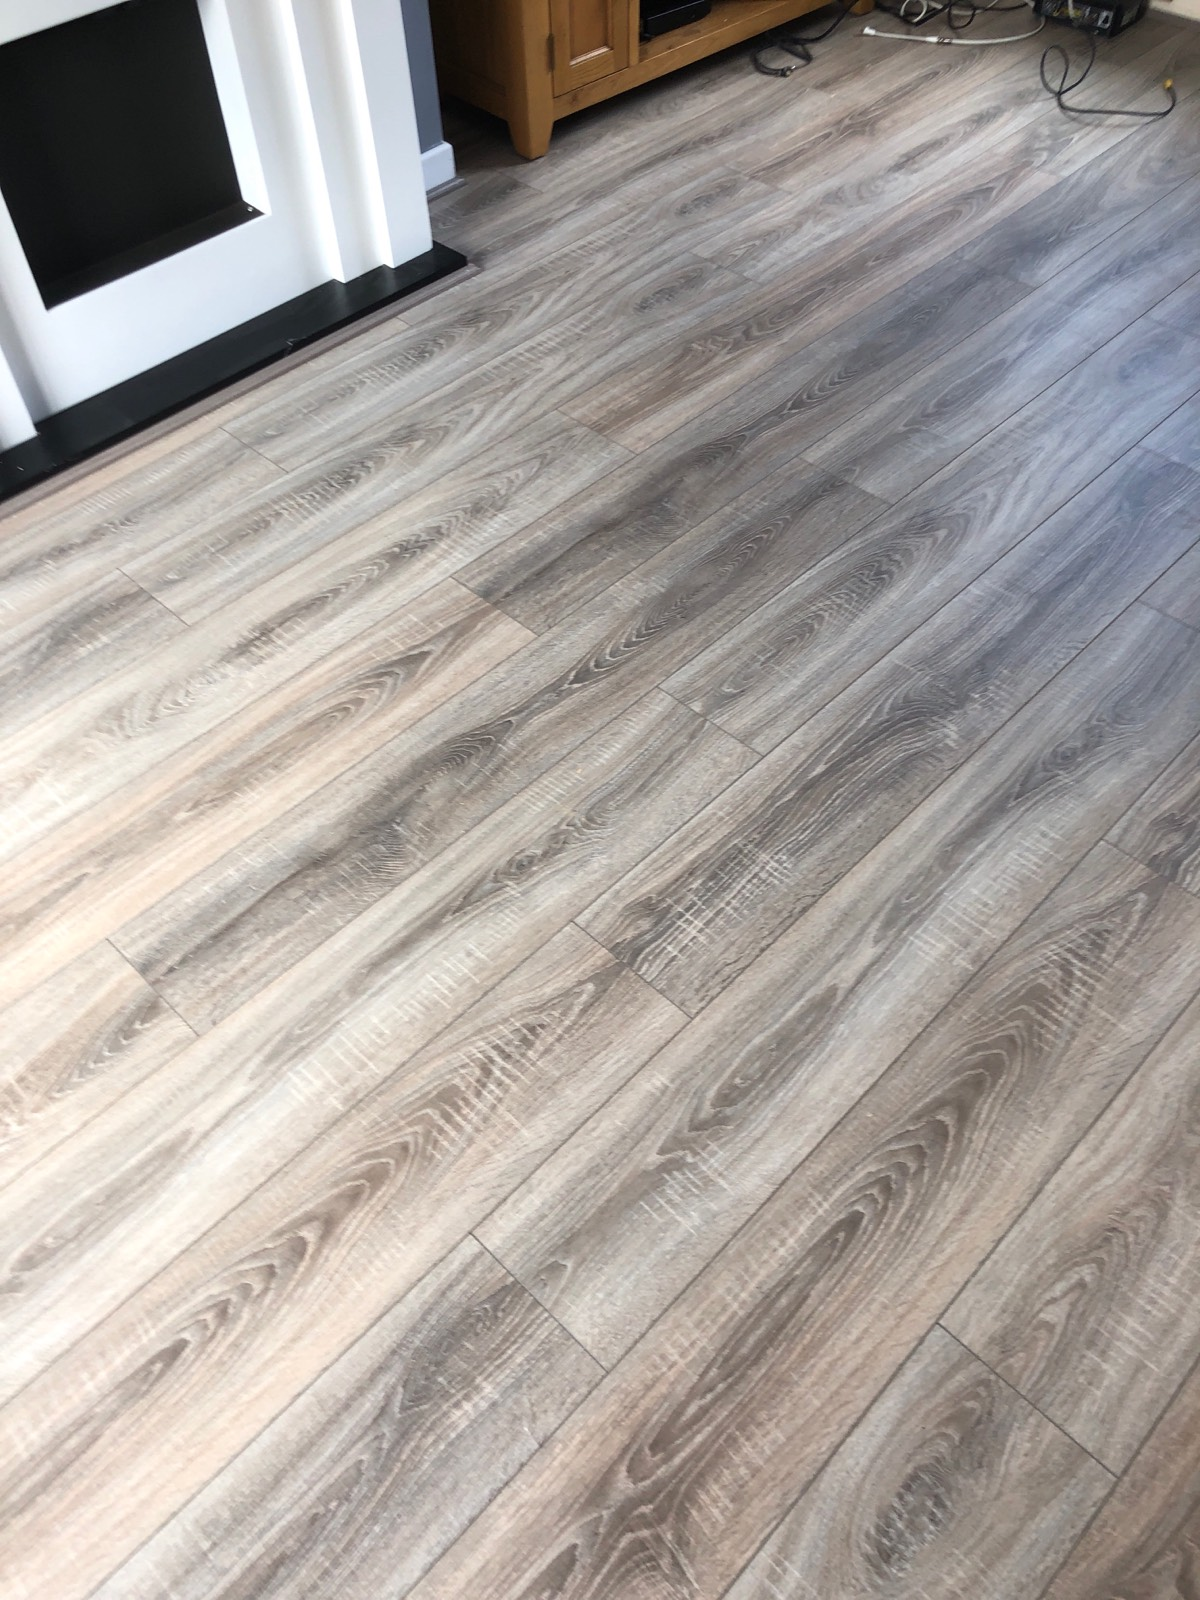 light laminate flooring fitted in living room with fireplace in image